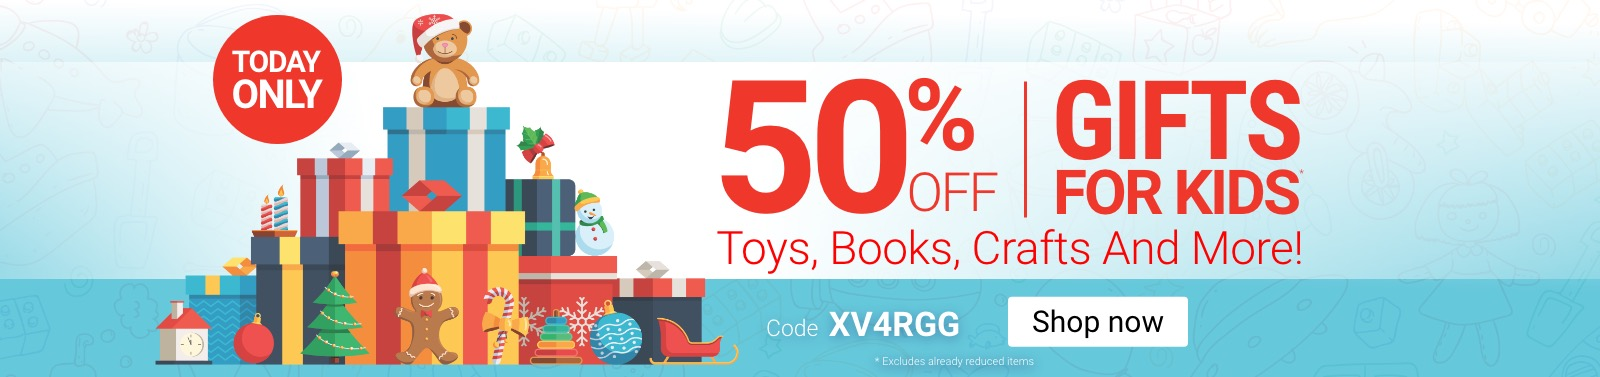 Save 50% On All Gifts For Kids Code XV4RGG Shop Now